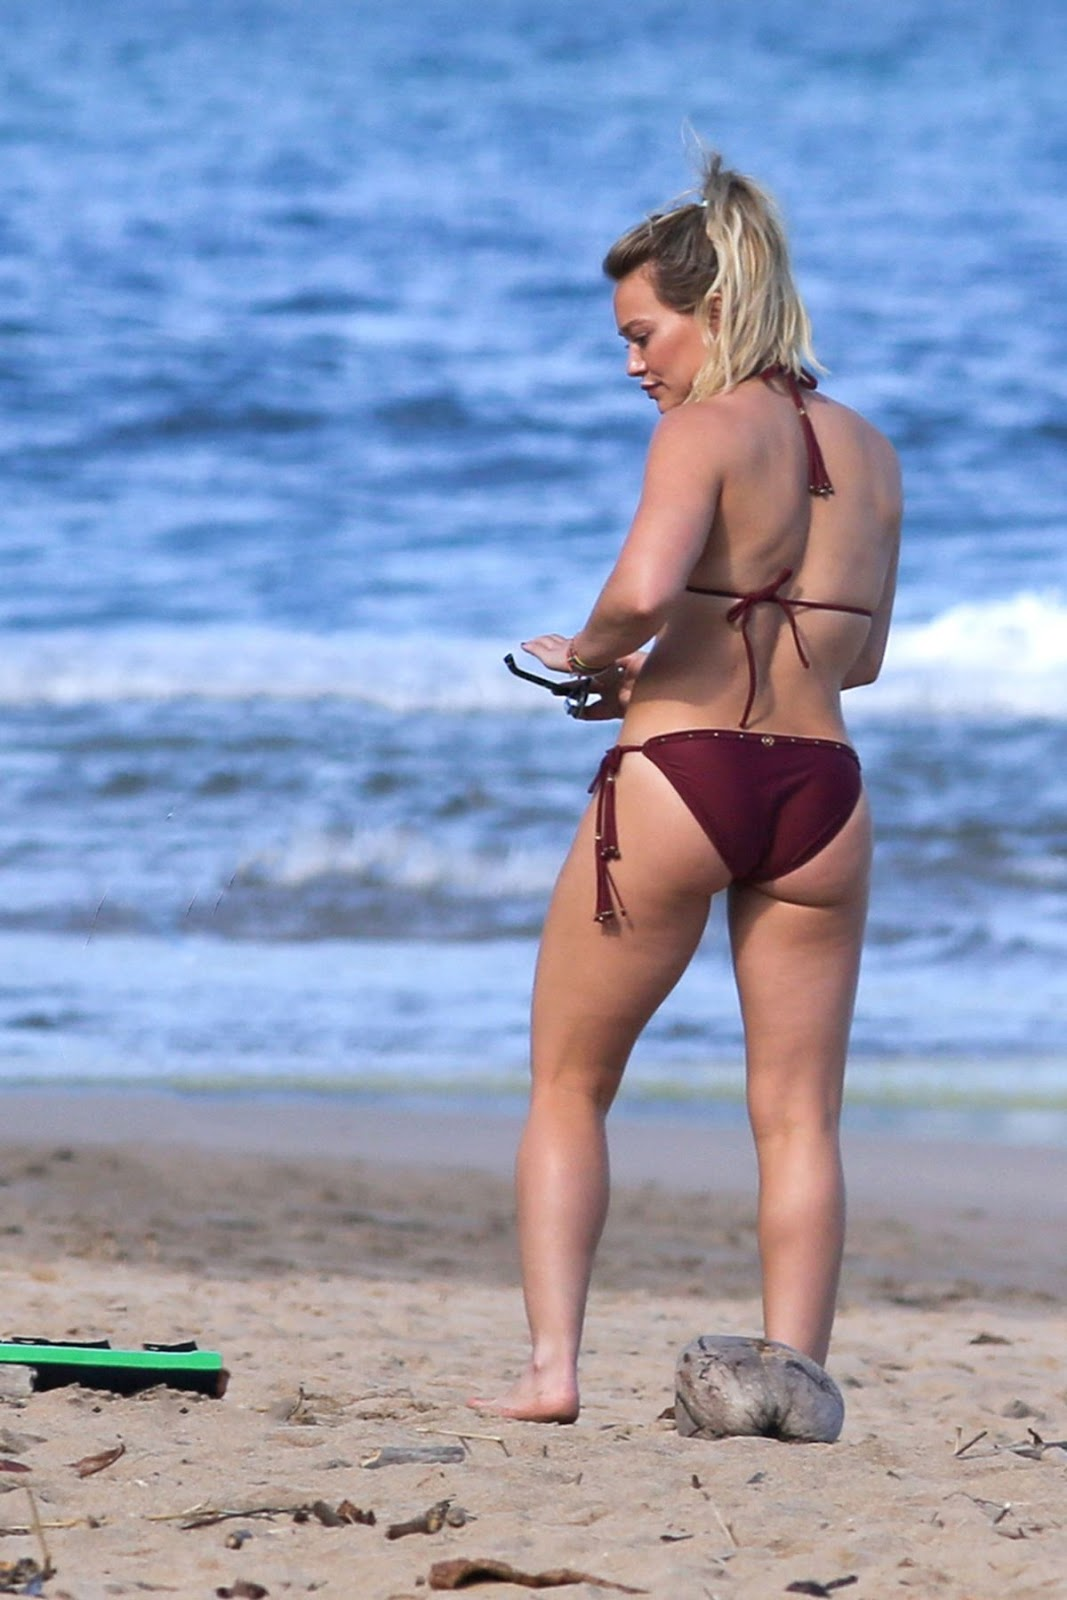 I think this is Hilary Duff's hottest Bikini look ever. Because, she is looking so hot in all these photos.